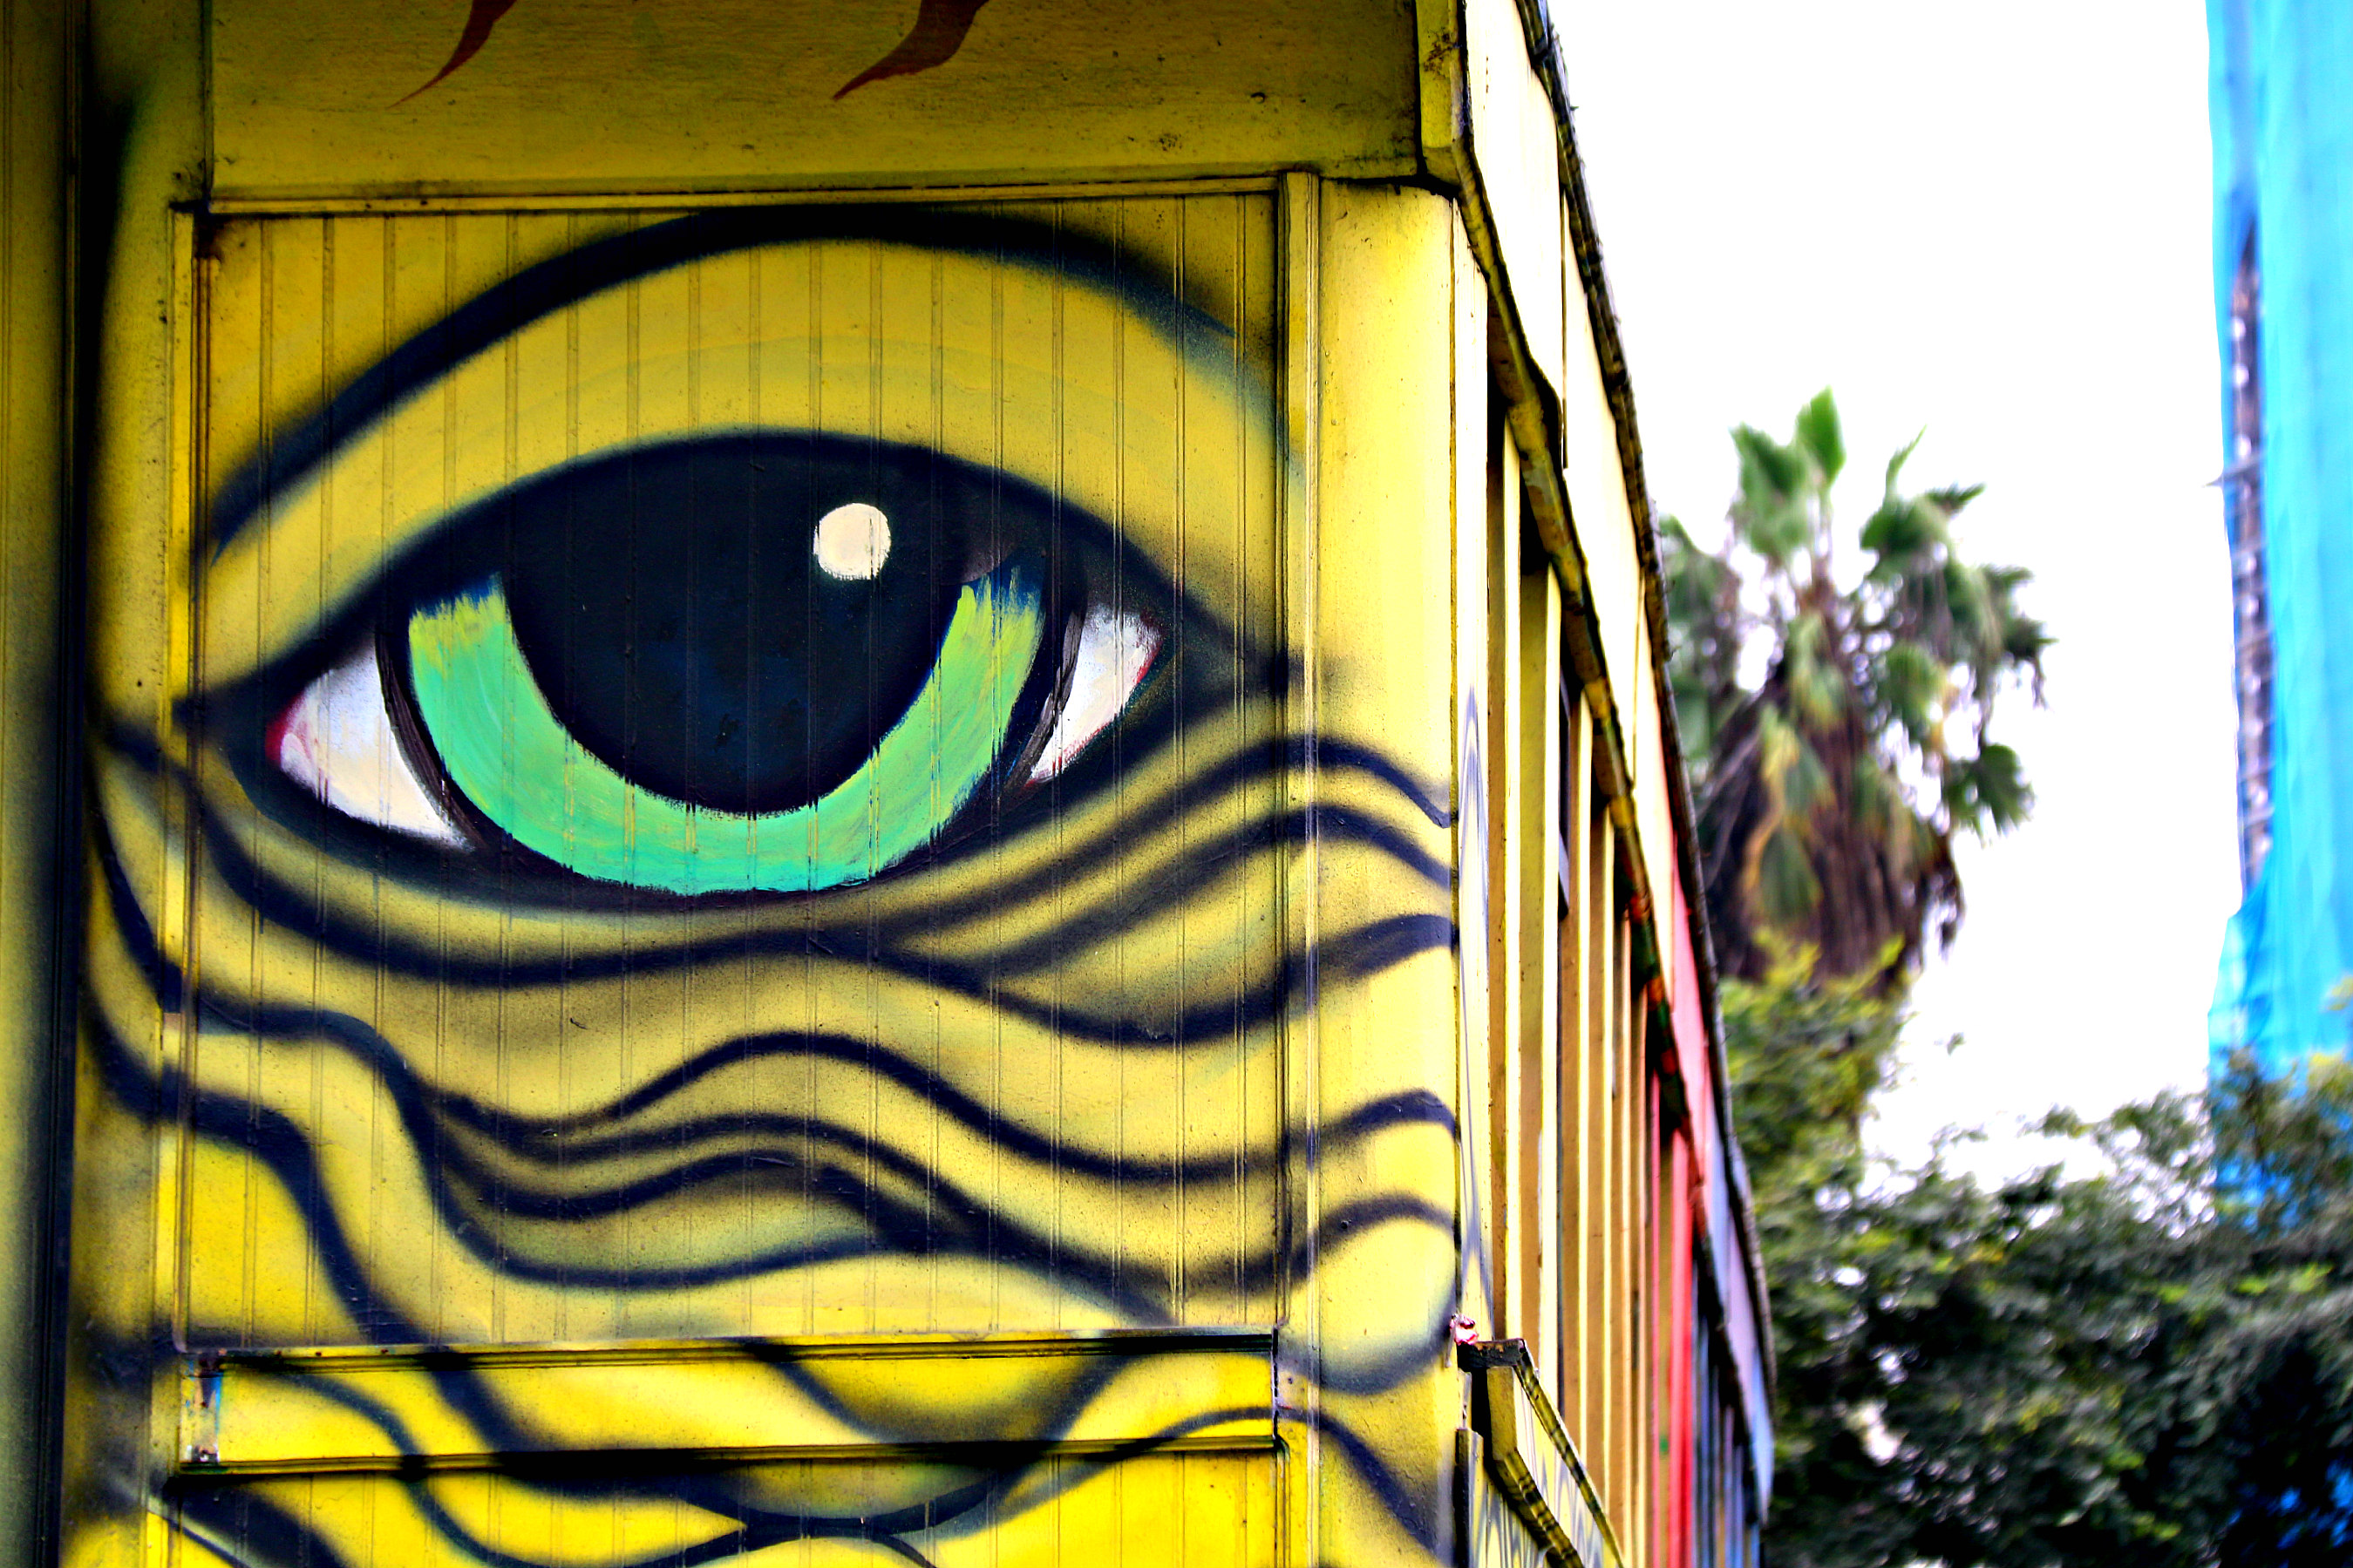 where to to find street art in Barranco, Lima cat bus by Los Salvajes aka Roberto Peremese, Nemo, Jimbo 2